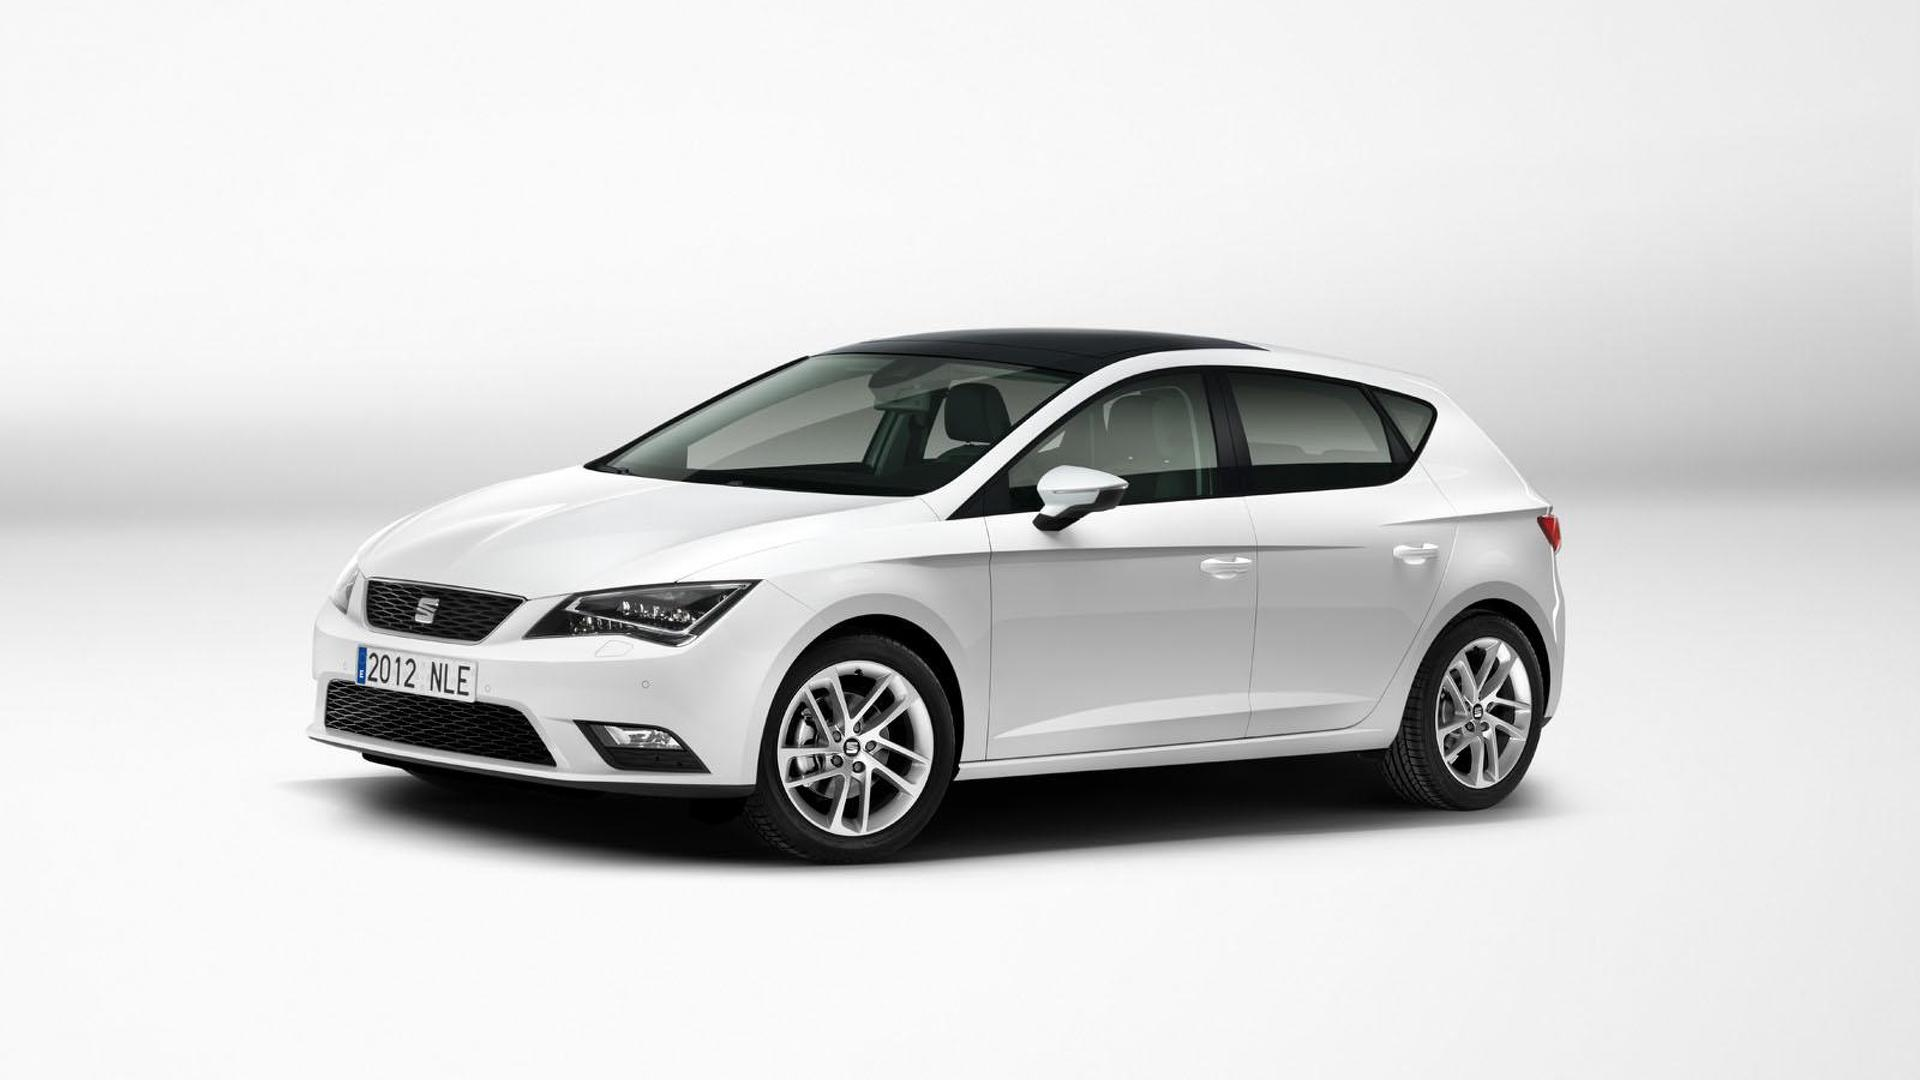 Seat Leon CUPRA due in 2014 frugal Ecomotive version planned